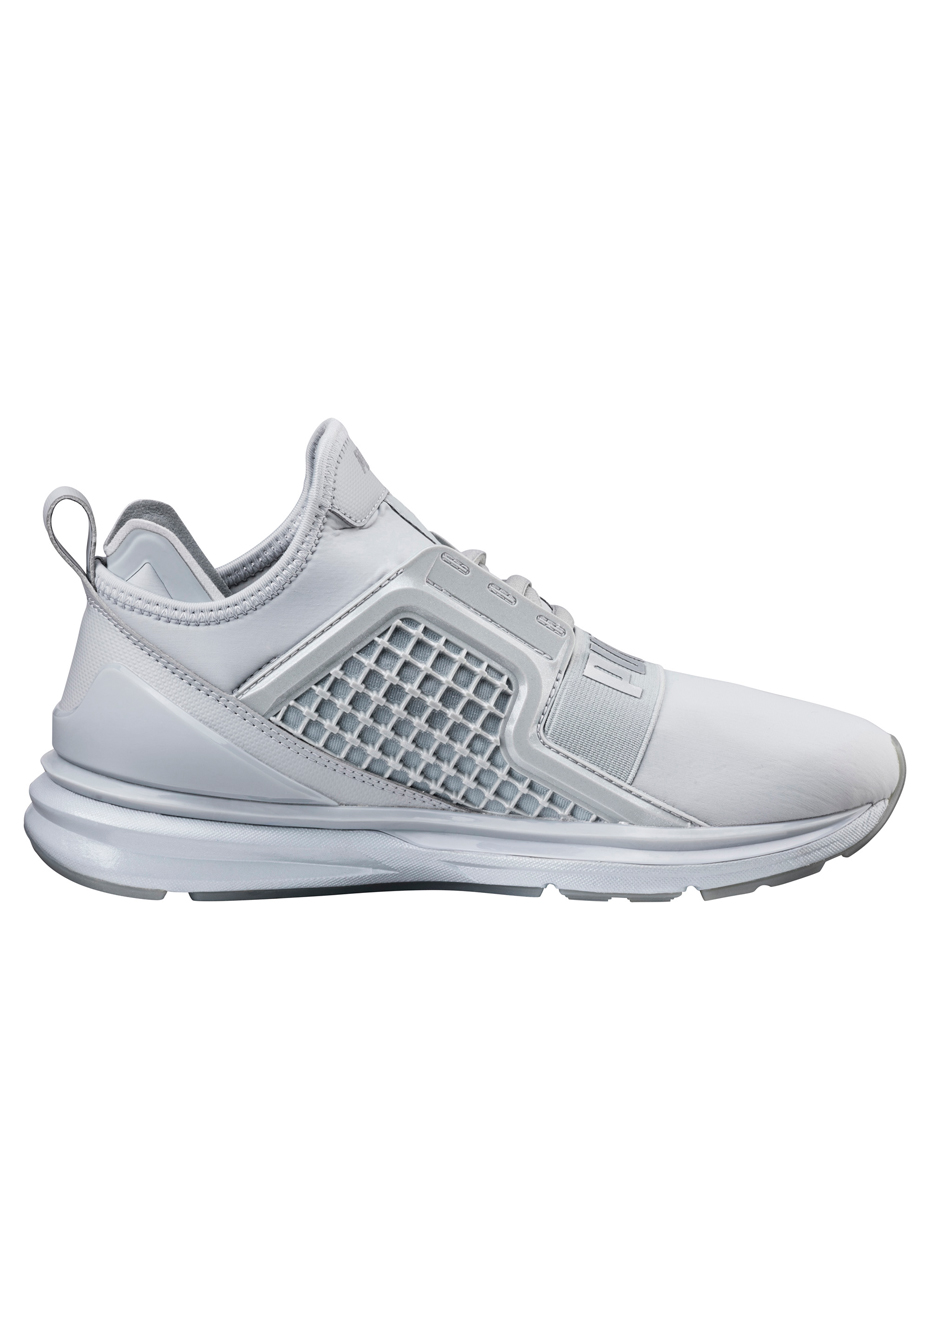 Puma Womens Ignite Limitless Metallic Silver